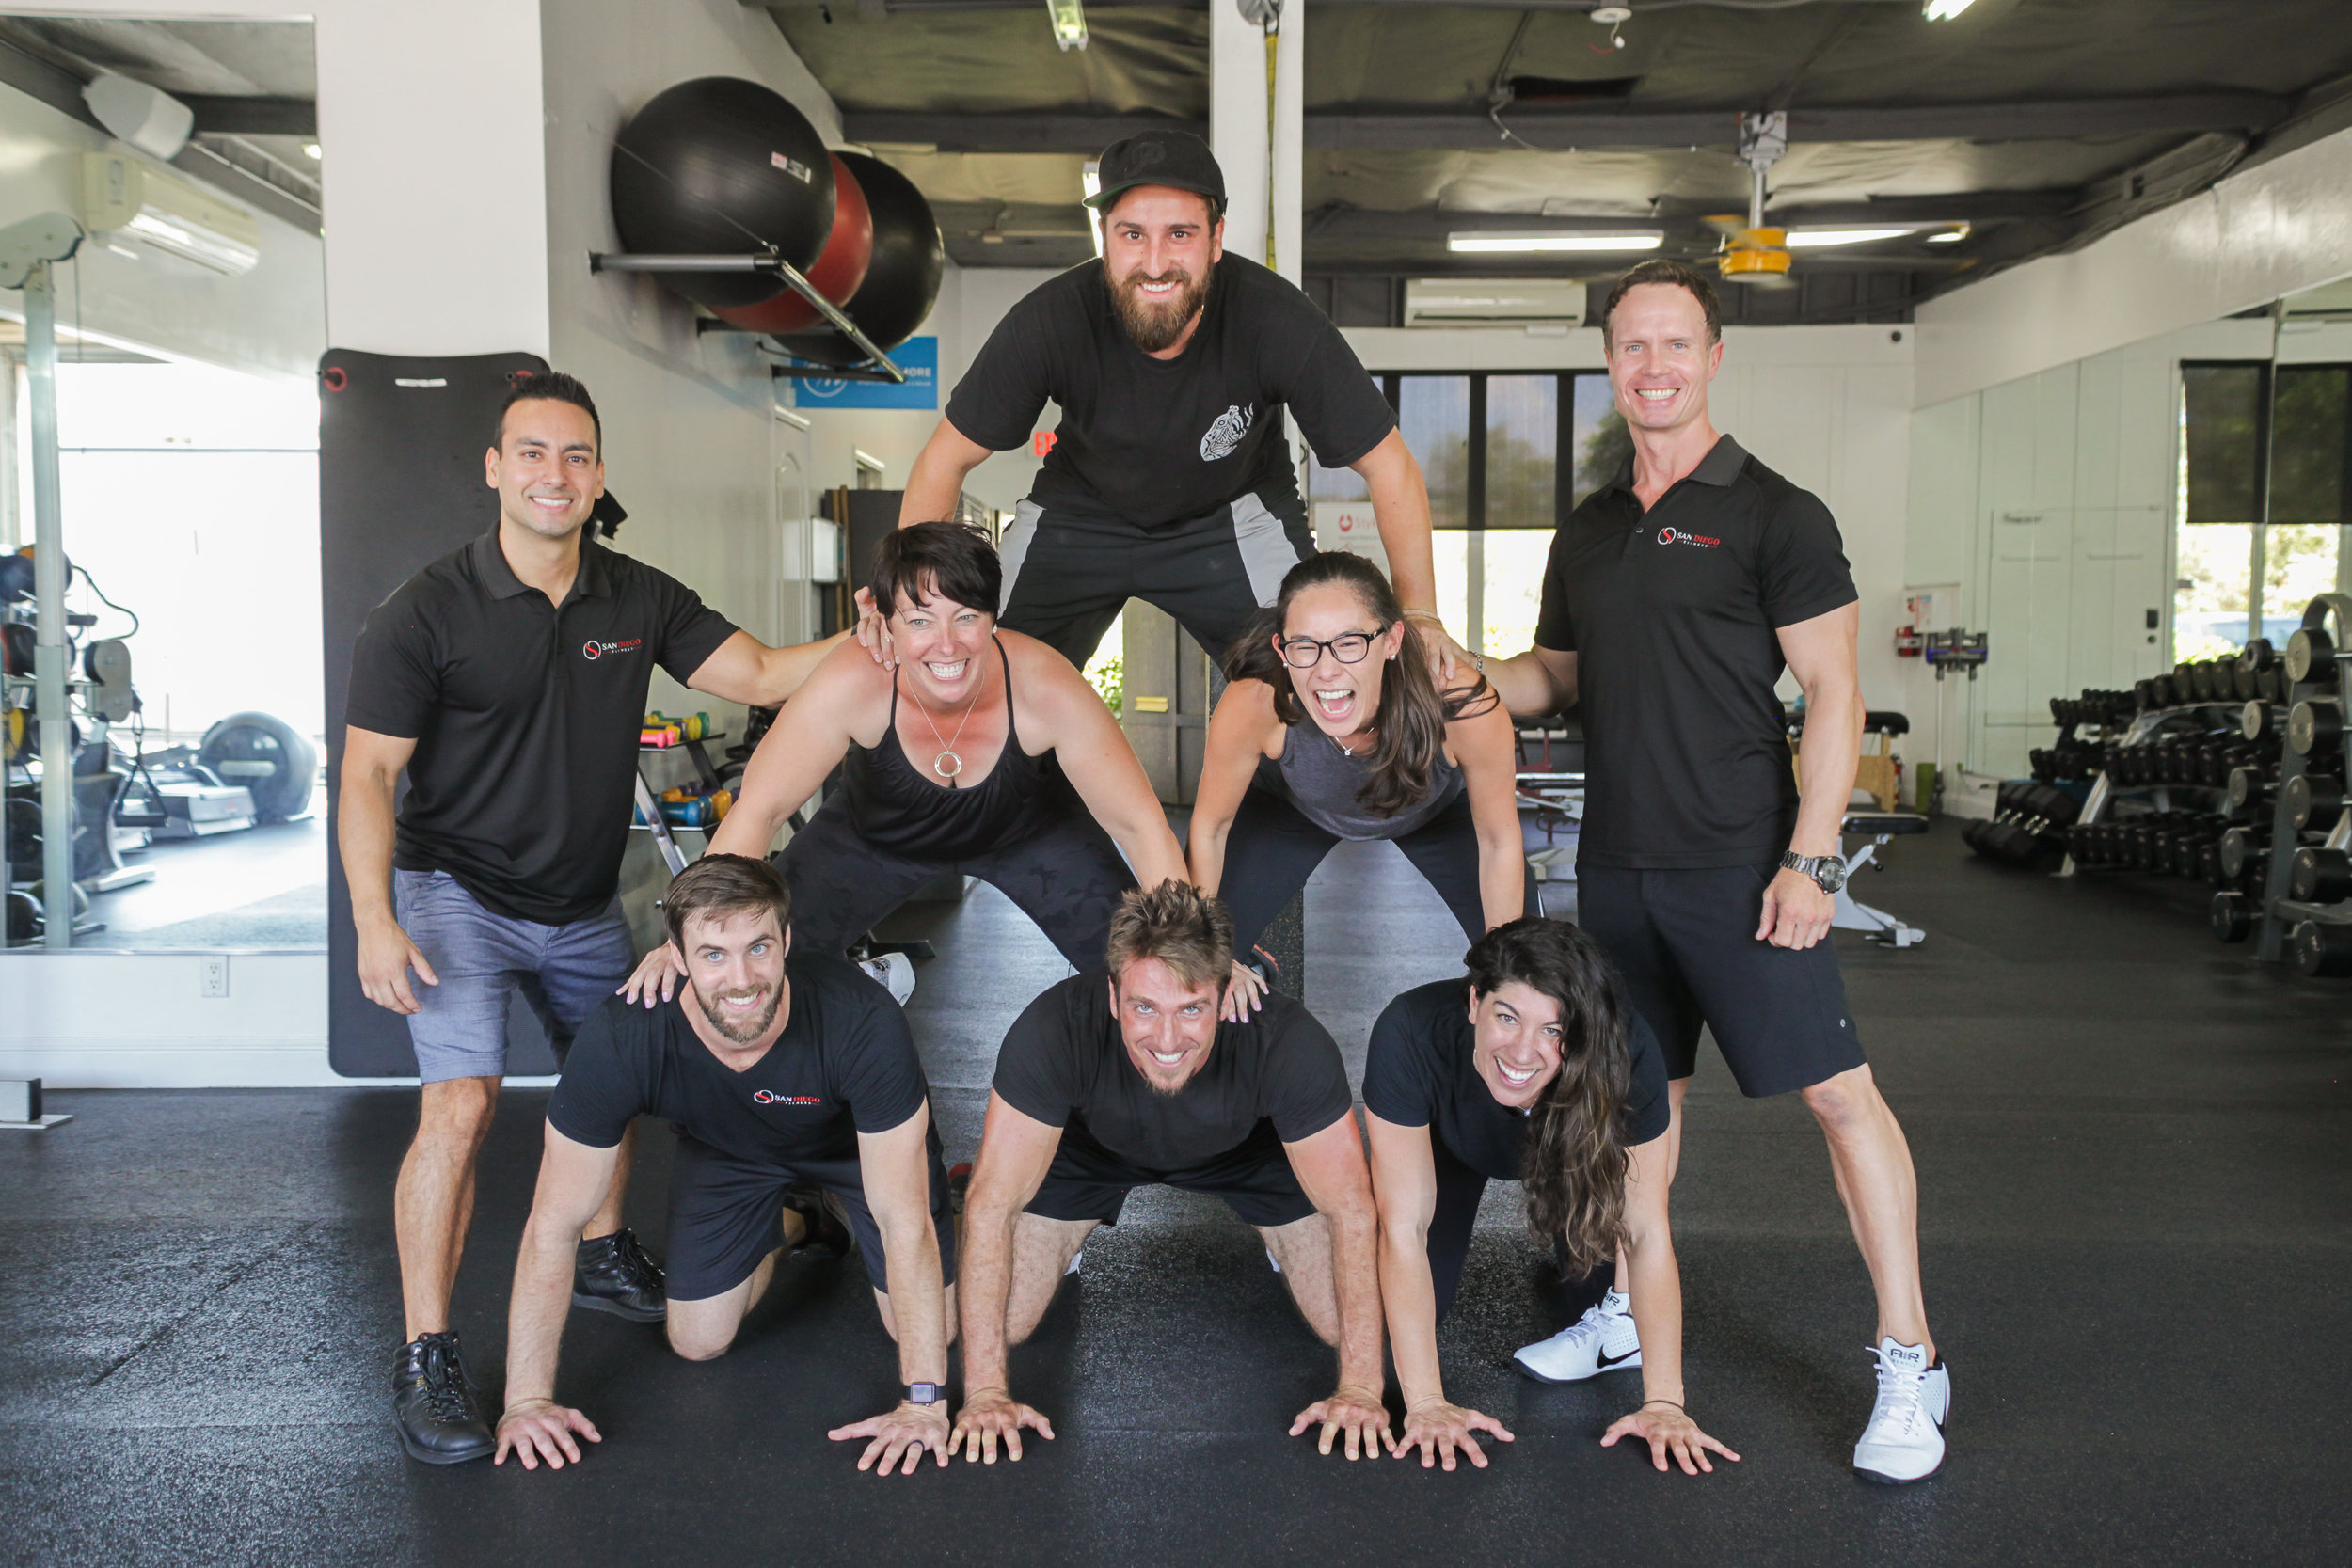 PEOPLE - With a team of professional personal trainers, San Diego Fitness attracts the elite and most highly experienced fitness professionals throughout the area. There is no category untouched by our Certified Personal Trainers, whether you're looking for general weight loss, to more specific needs such as post rehabilitation and beyond.